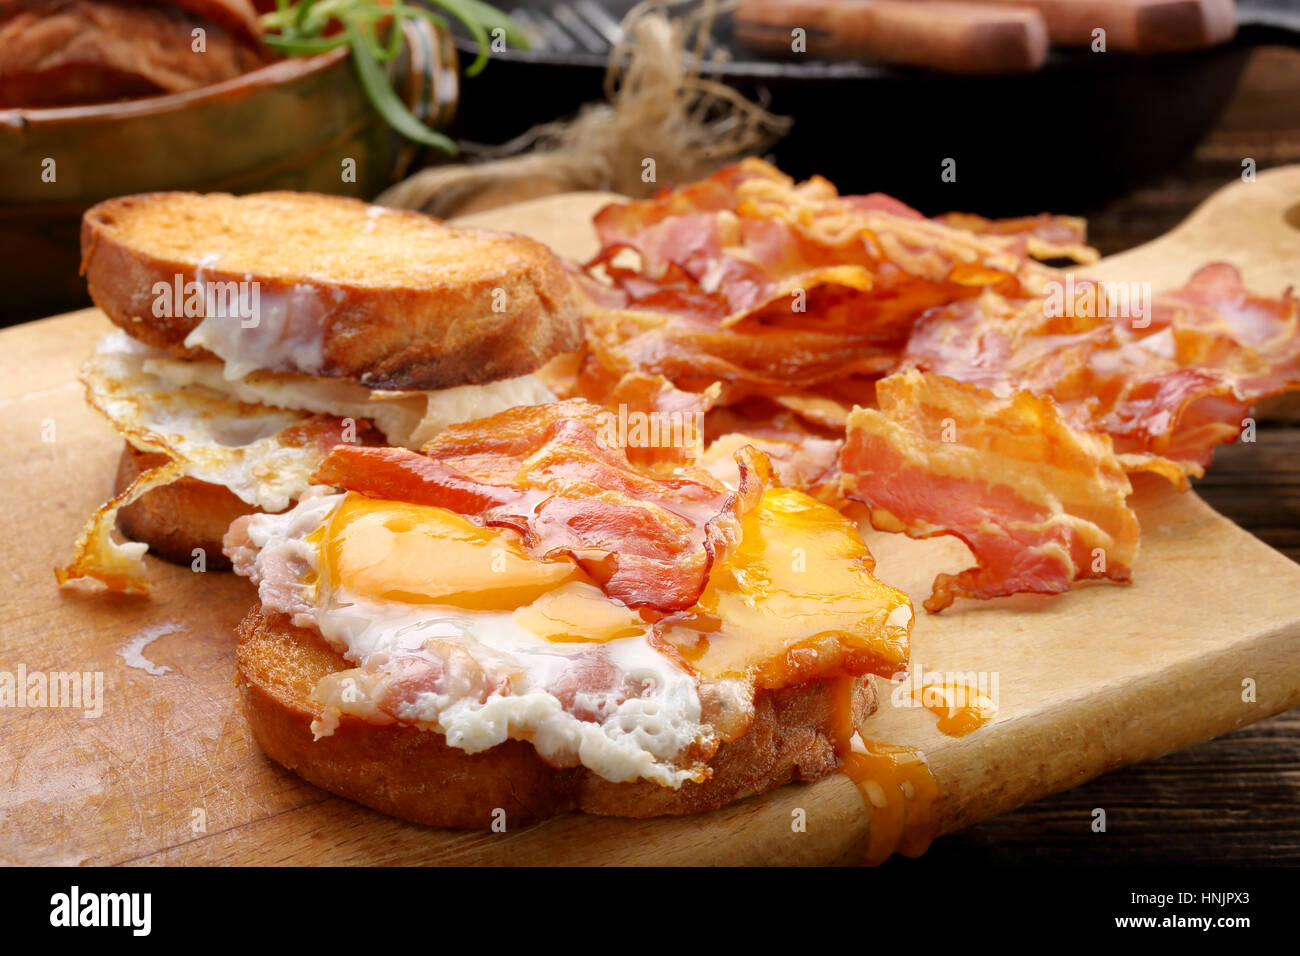 Sandwich with fried egg and hot bacon pieces on wooden background - Stock Image